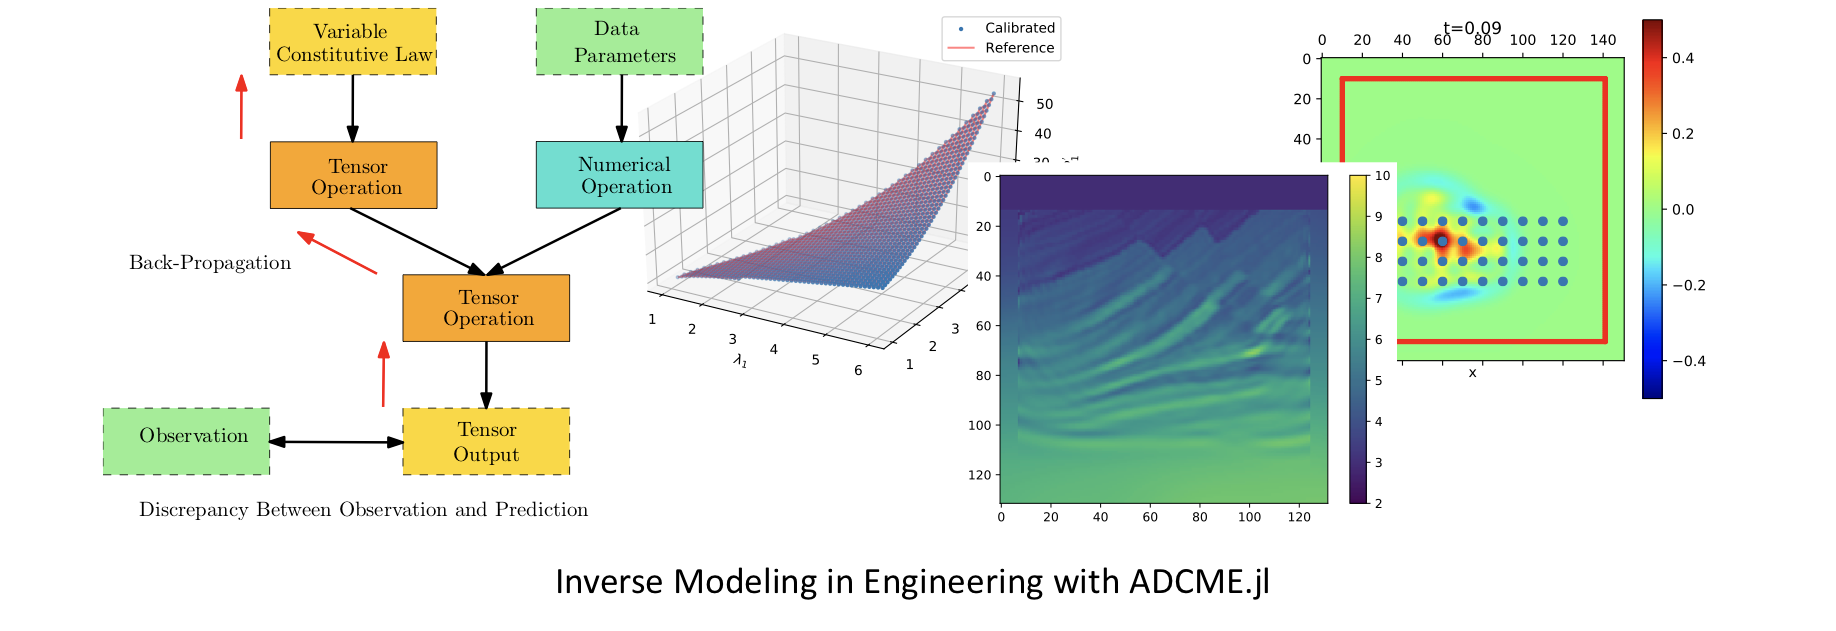 Introduction to ADCME jl: An Inverse Modeling Library for Scientific